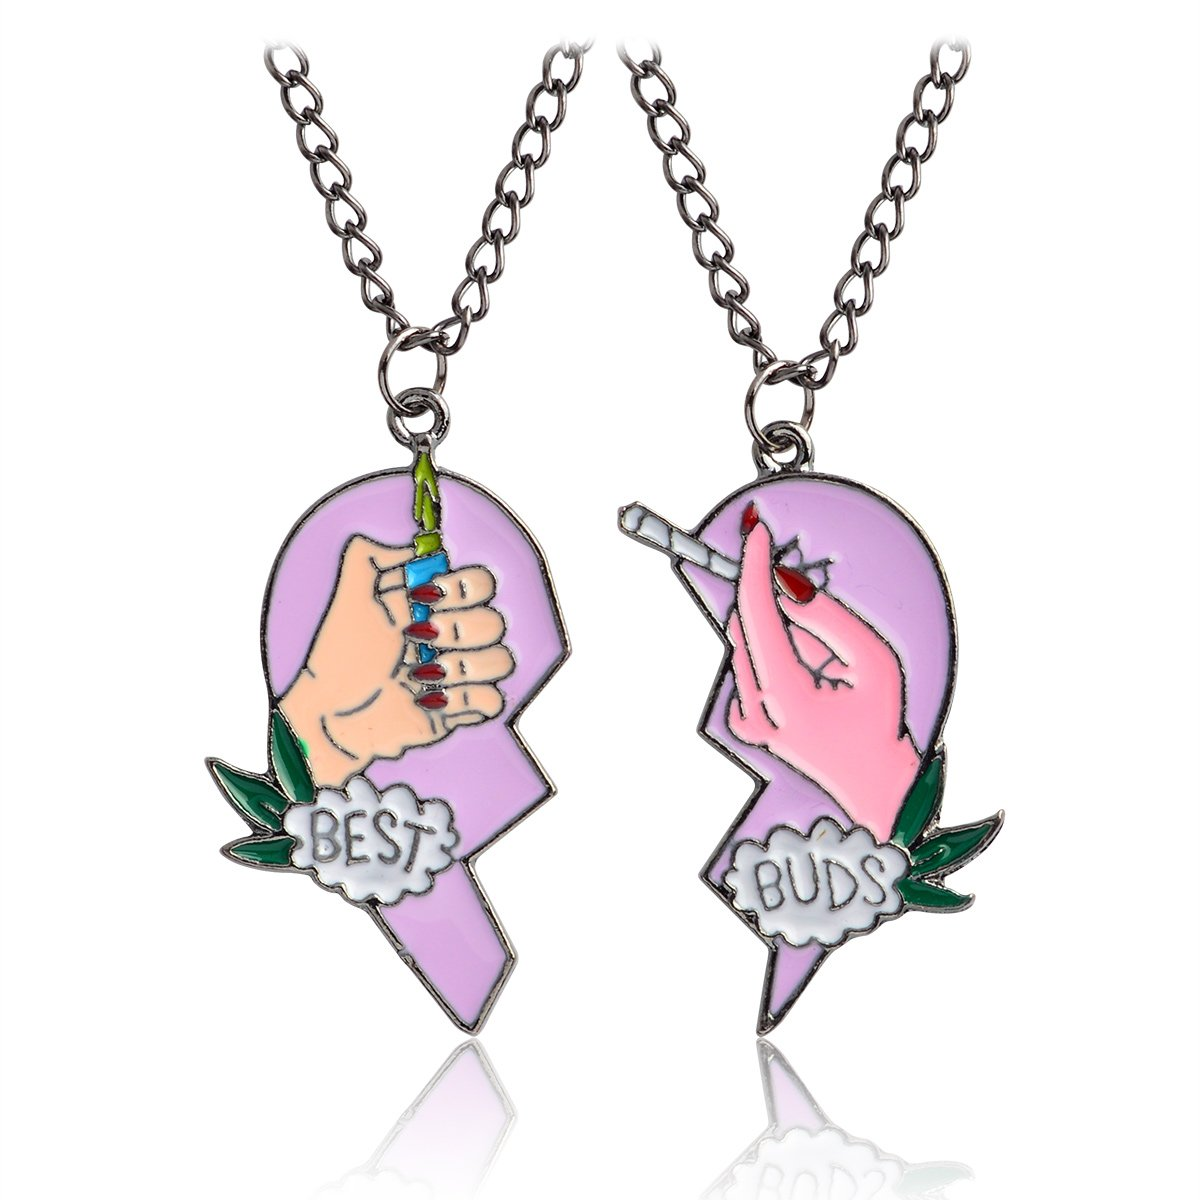 "QIHOO ""Best Buds BFF Best Friends Valentine Cannabis Pot Matching Pendant Necklaces Gift Set of 2"